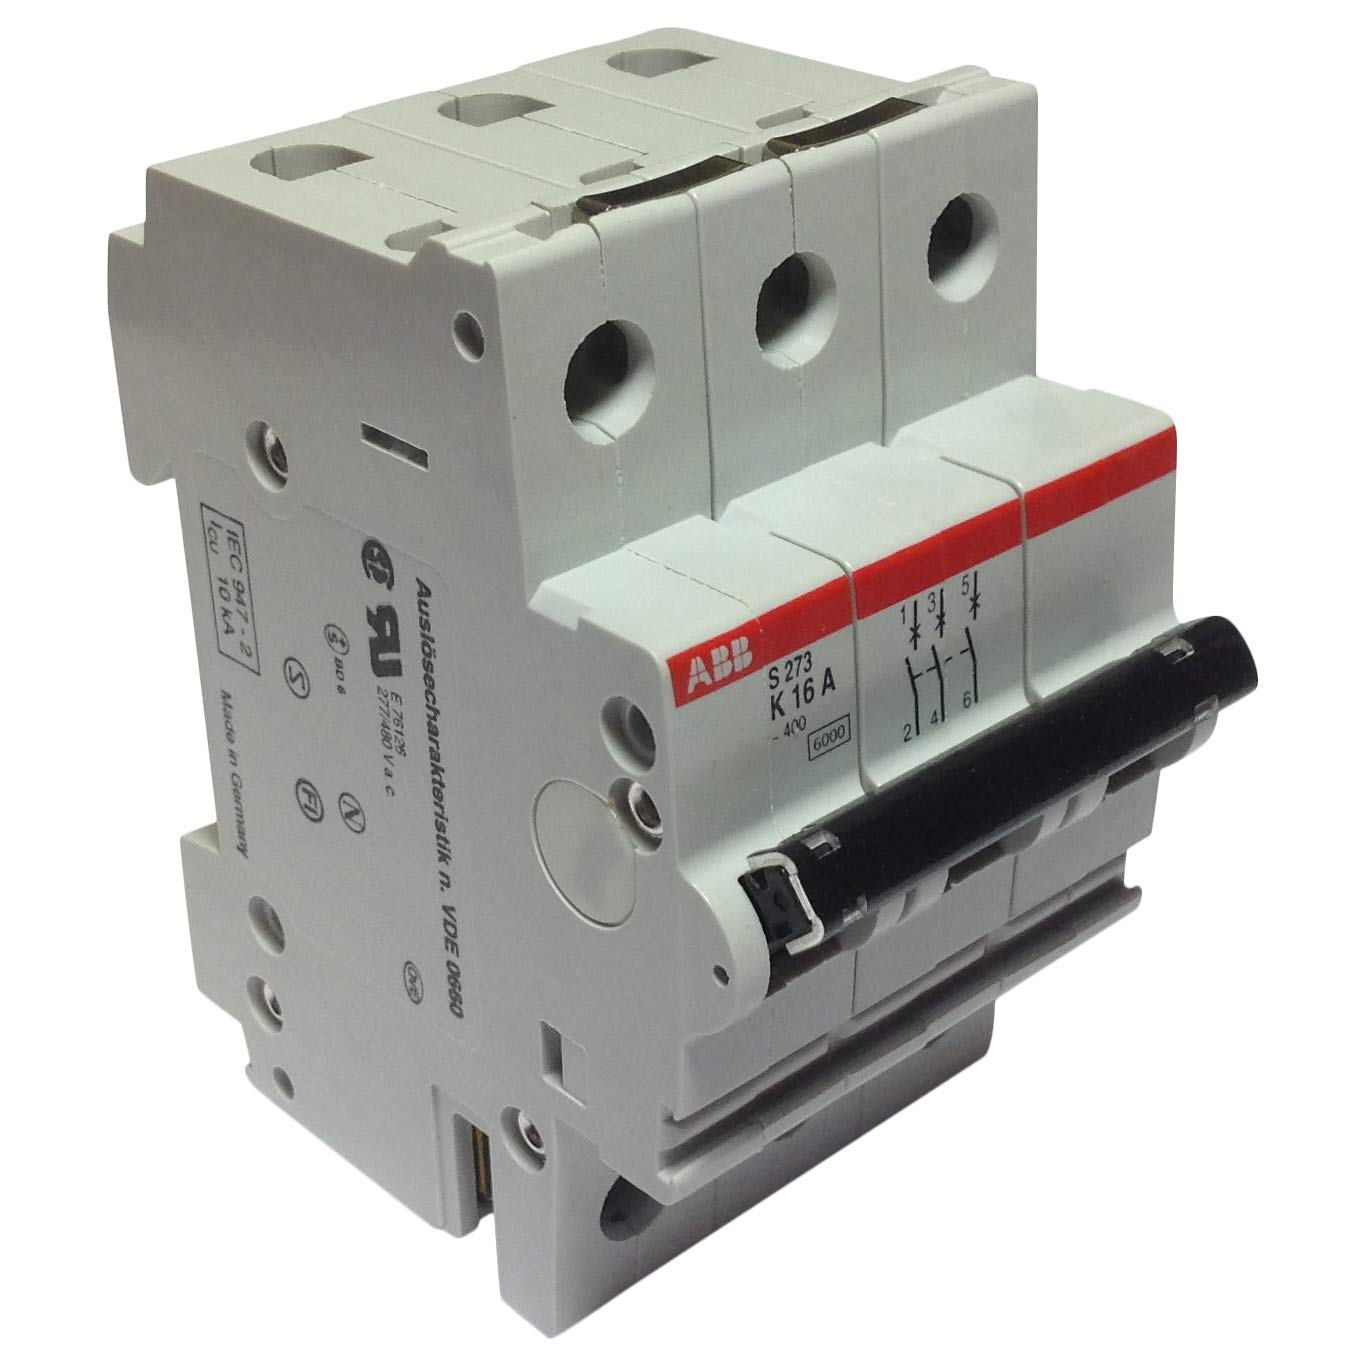 S273K16 ABB MCB 16A Circuit Shipping Finally resale start included 3P Breaker